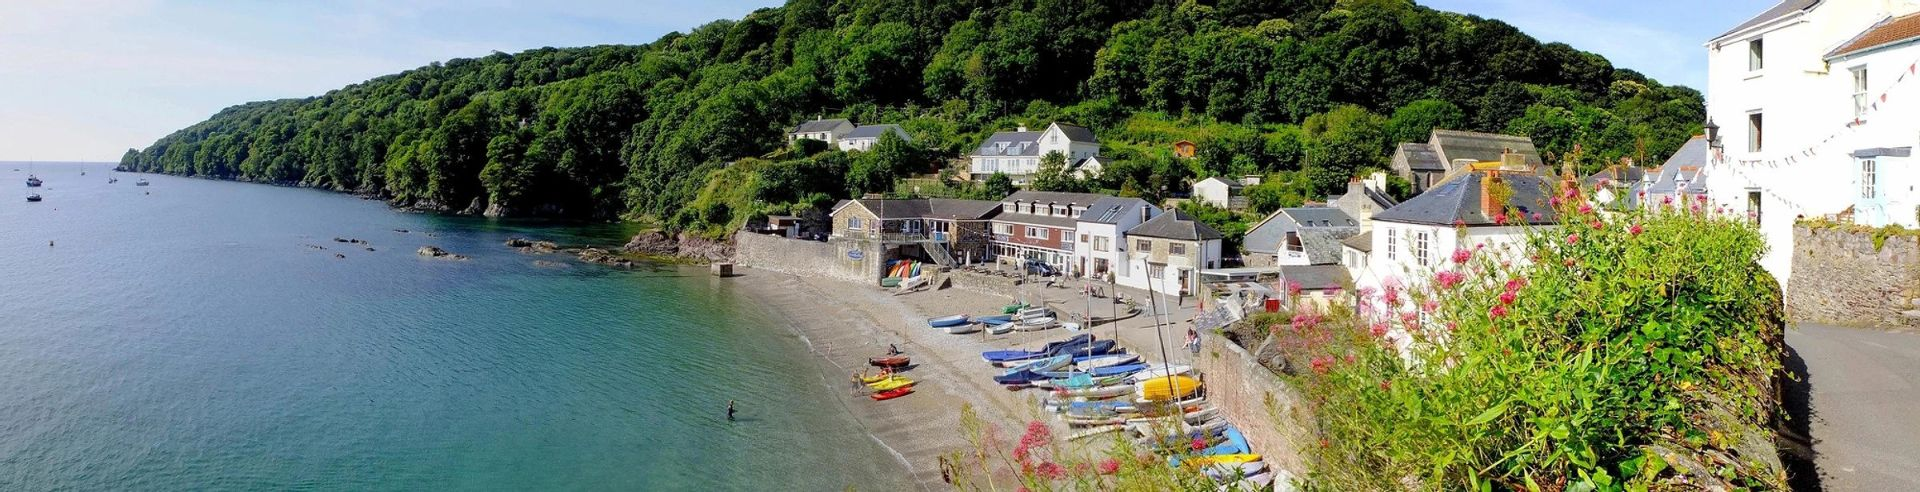 View over Cawsand Beach, lined with sailing boats